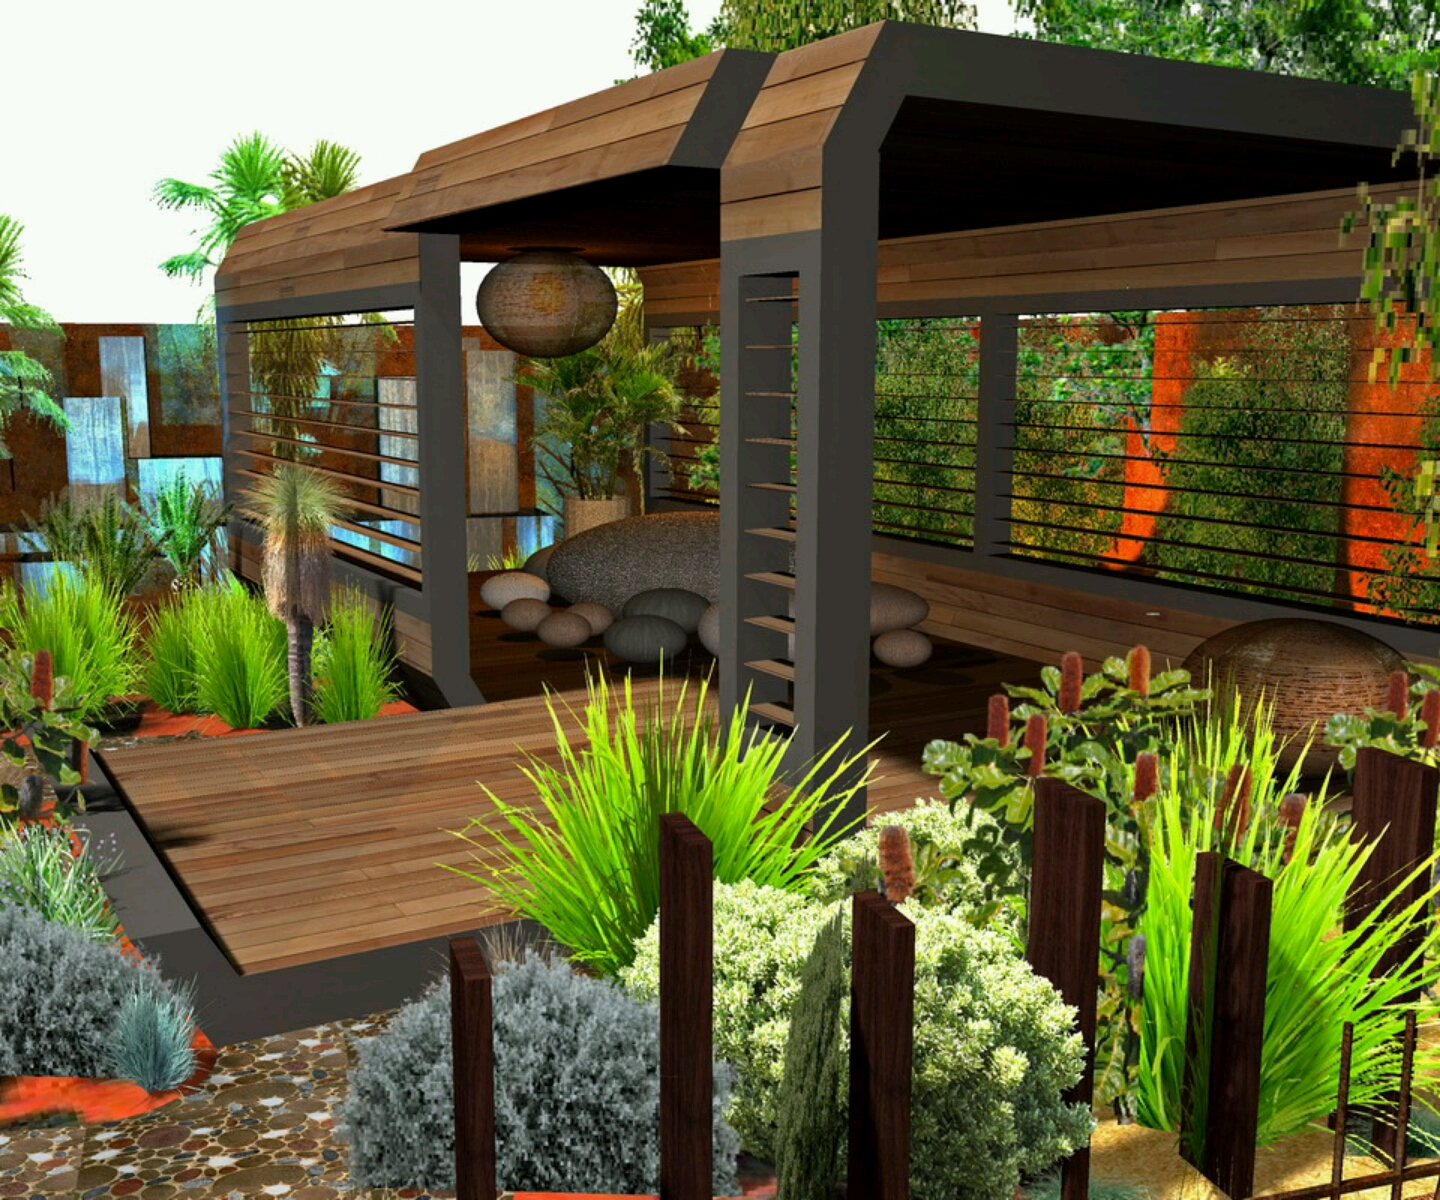 New home designs latest modern homes garden designs ideas for Outdoor plans and designs